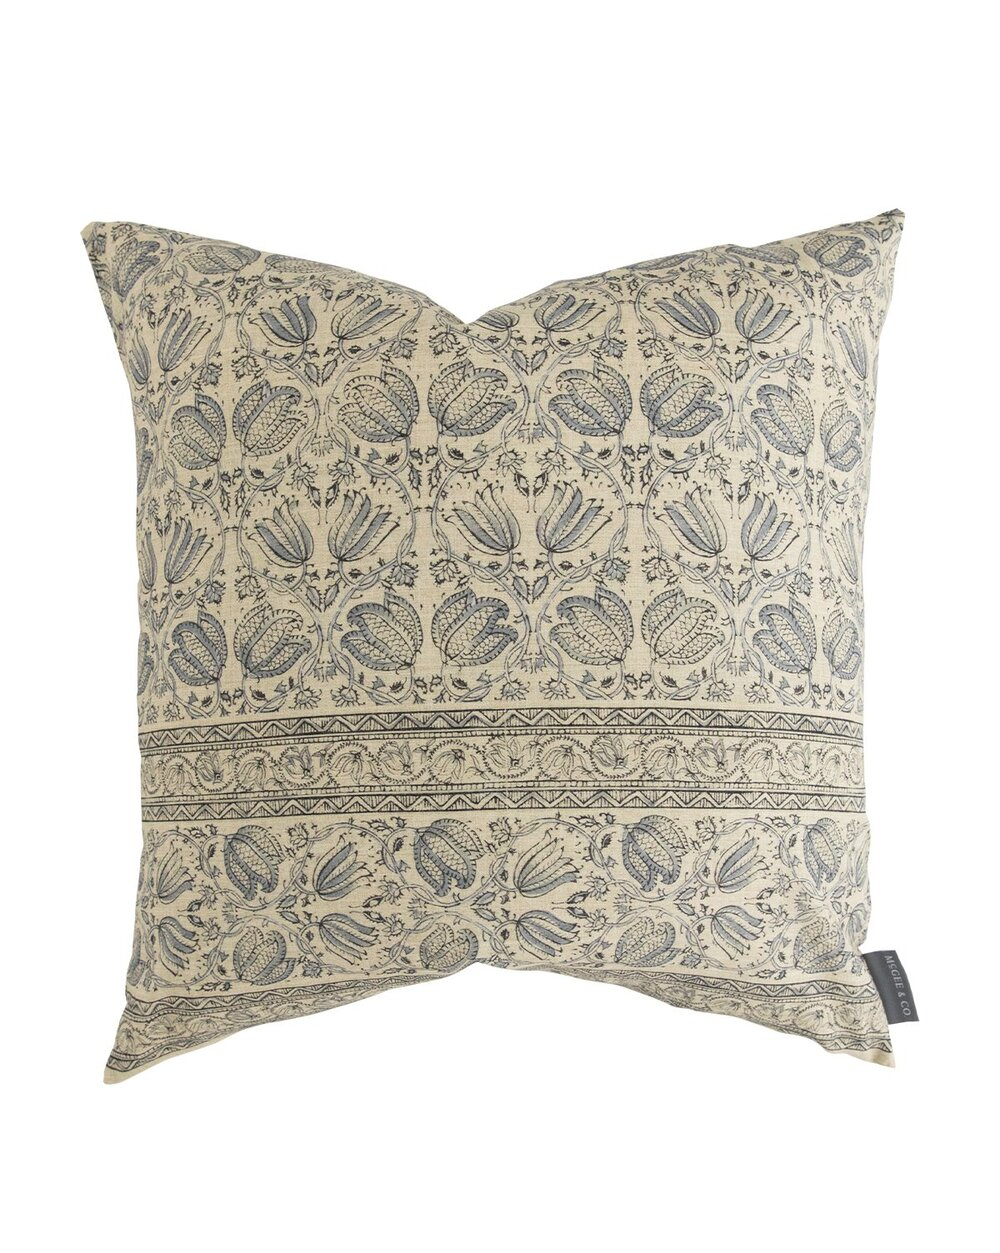 Danny_Floral_Print_Pillow_Cover1.jpg